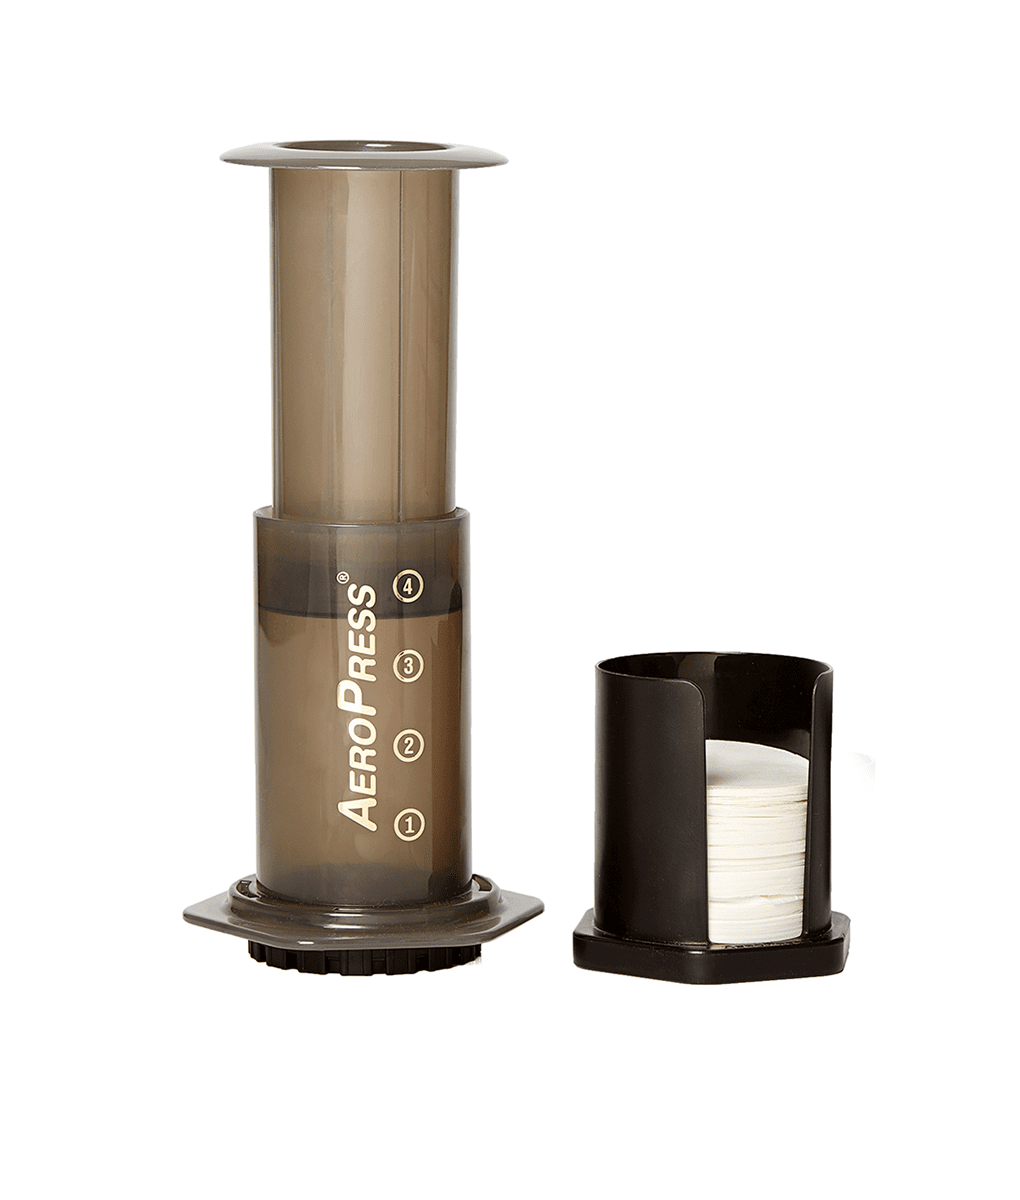 AeroPress Set, AeroPress with 2 coffees